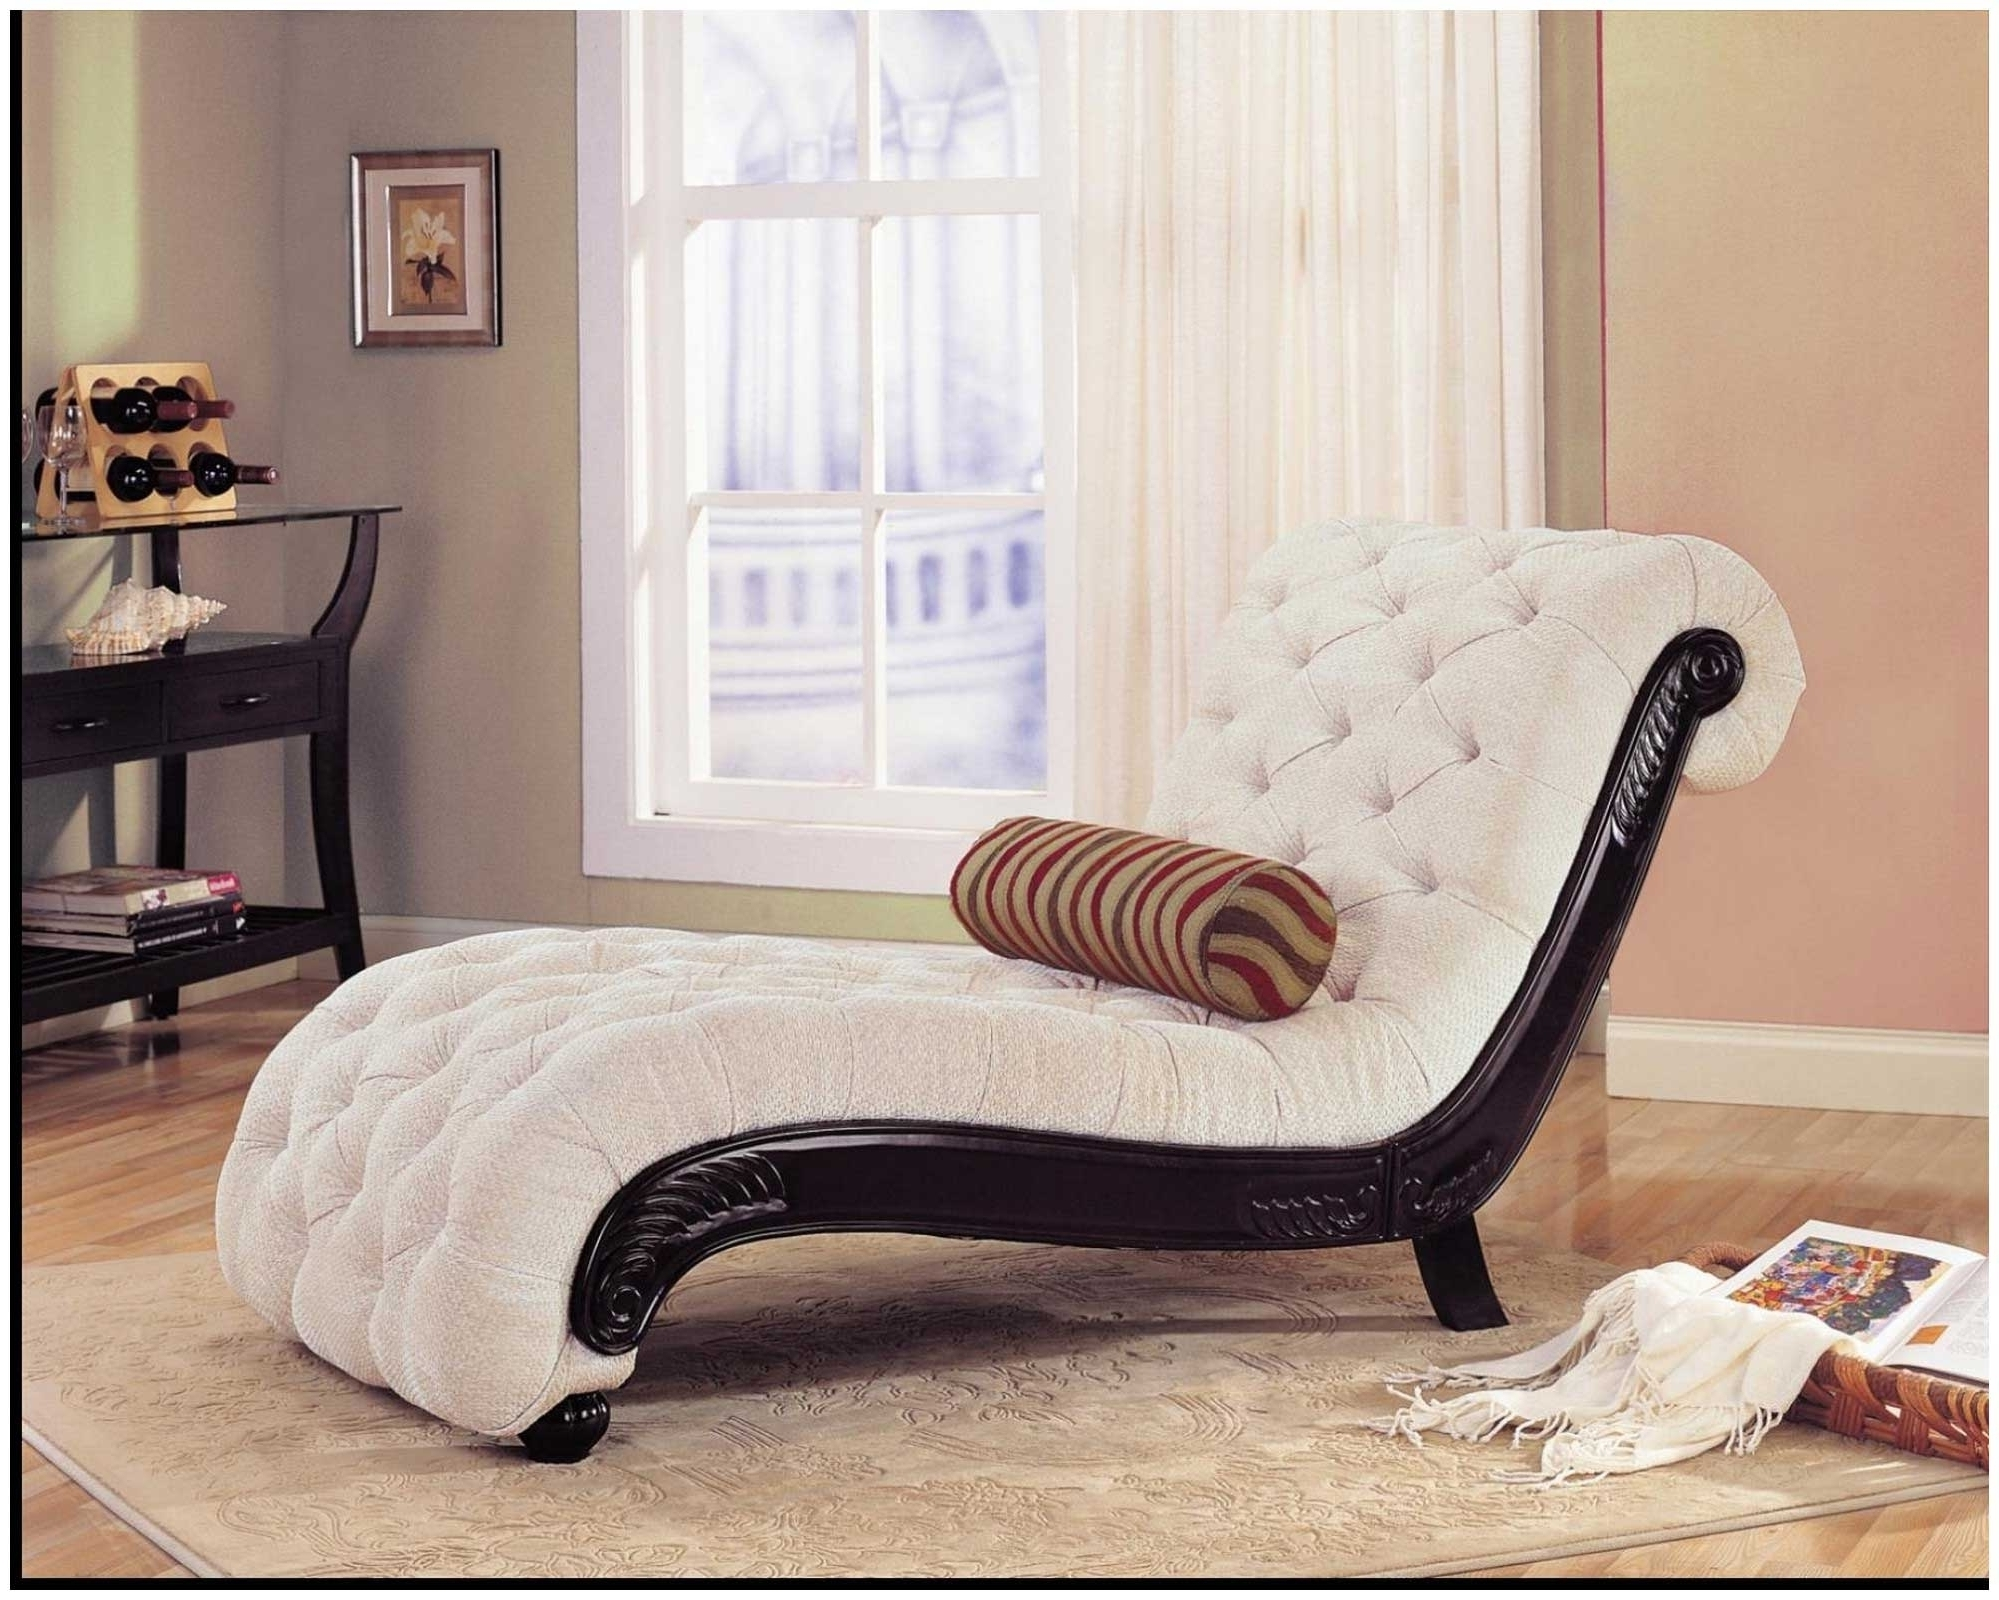 Small Chaise Lounge Chairs For Bedroom Regarding Current Bedroom Loungers Small Chaise Lounge Chair Leather Inspirations (View 13 of 15)